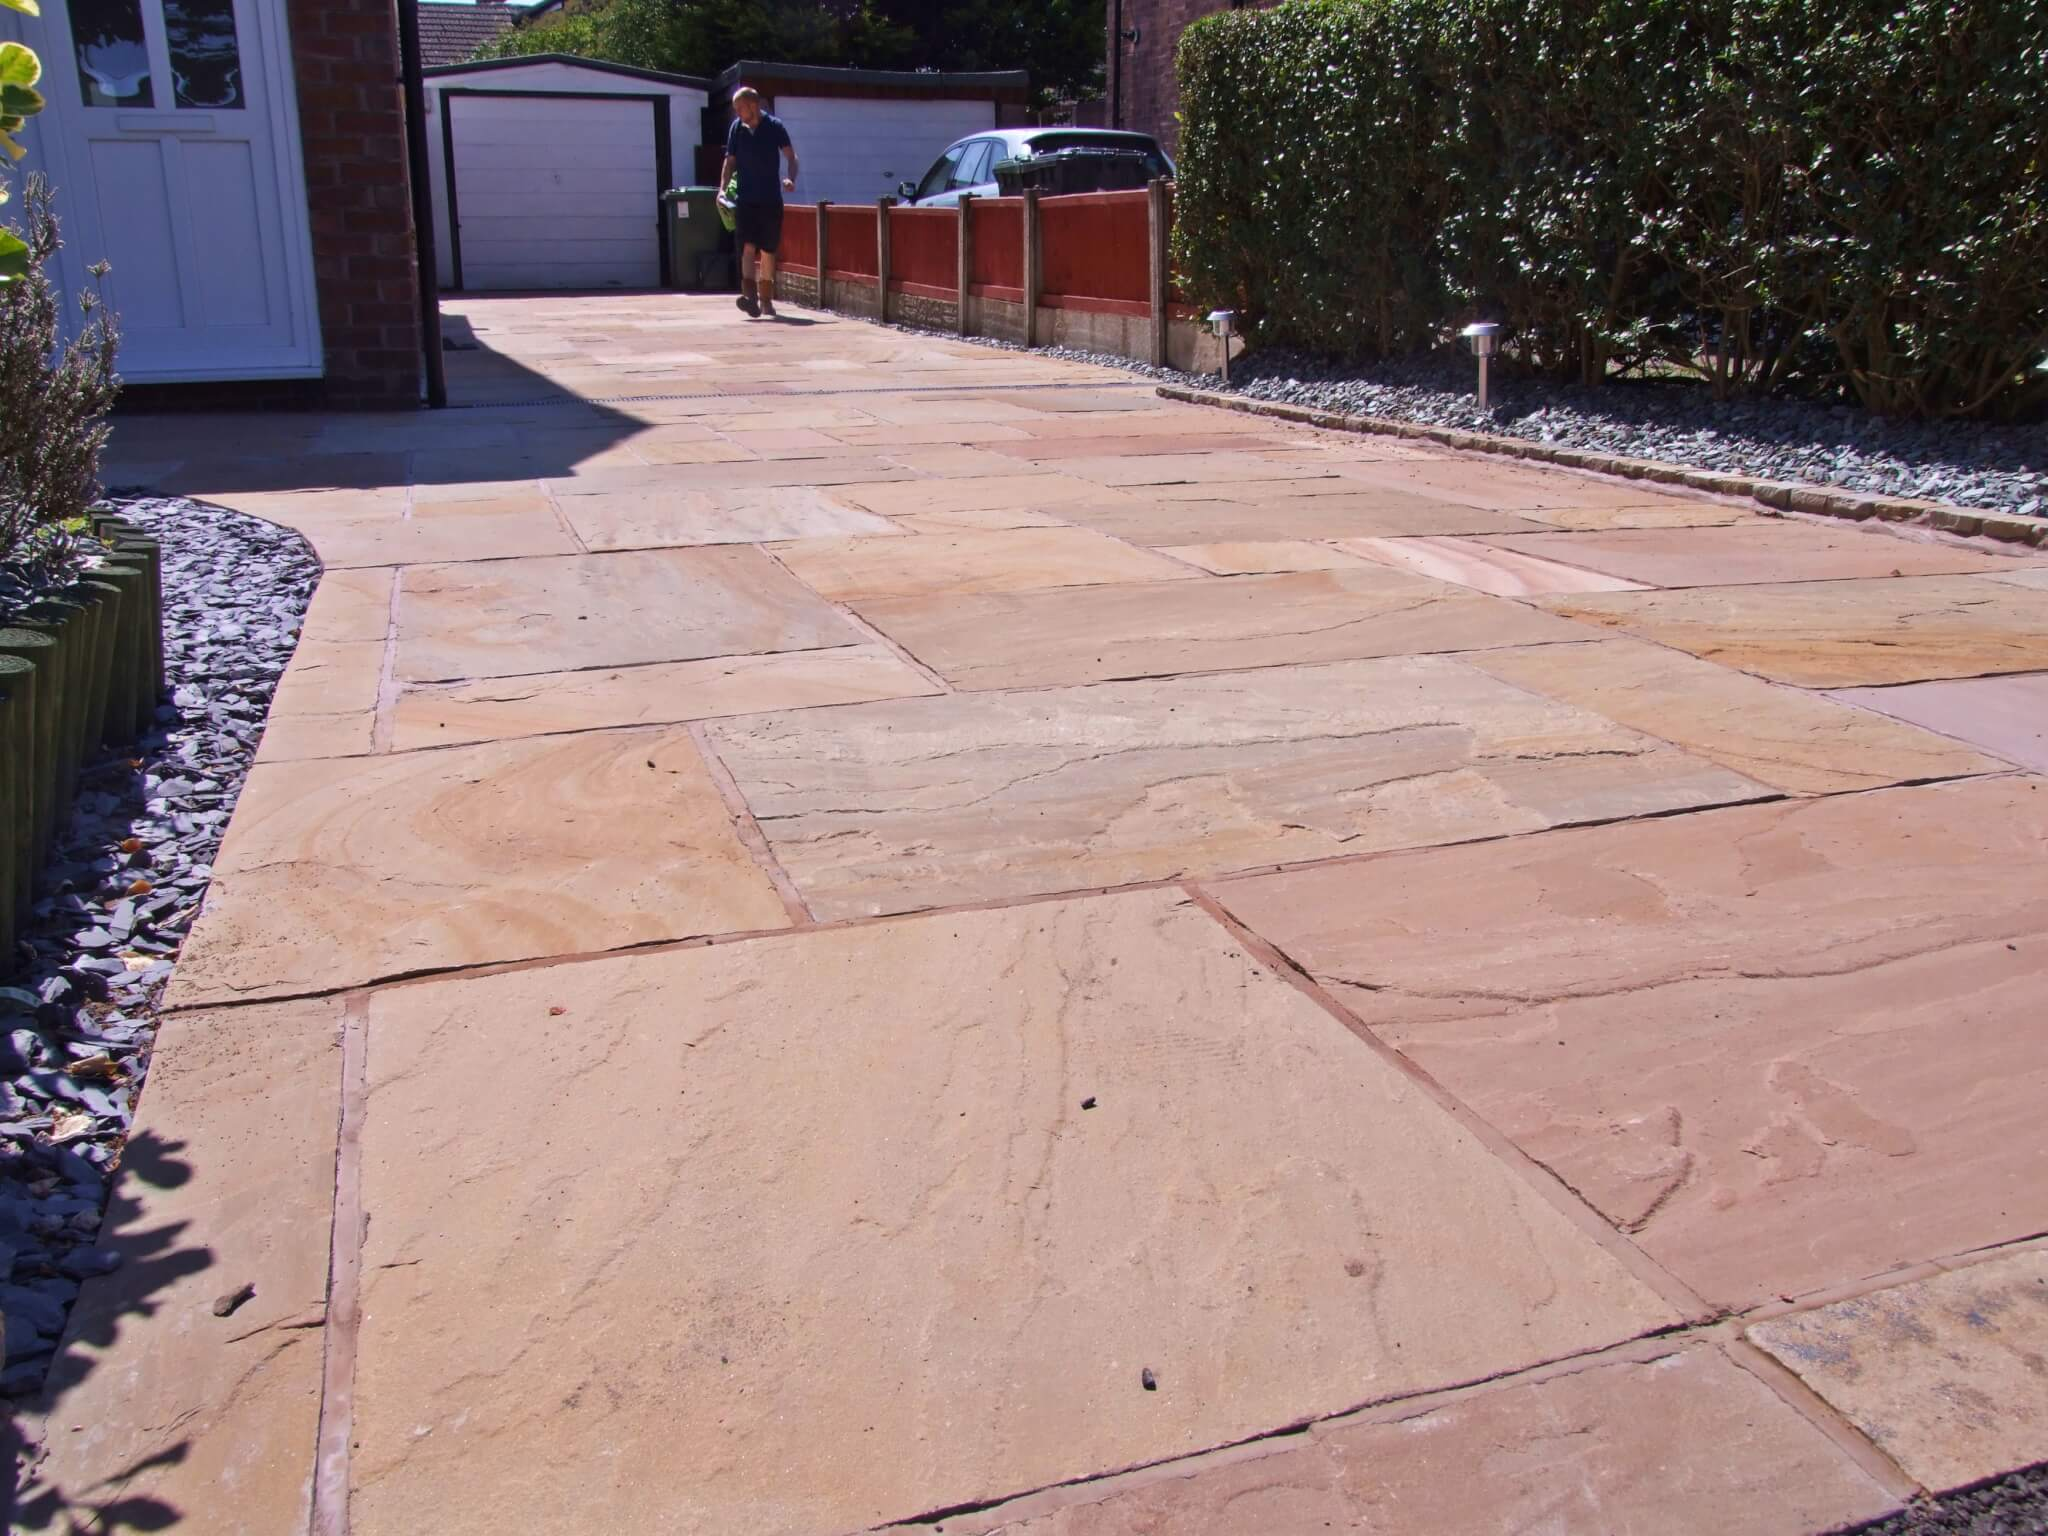 Indian Stone Flags >> Natural Stone Paver Driveway Formby Merseyside | Abel ...